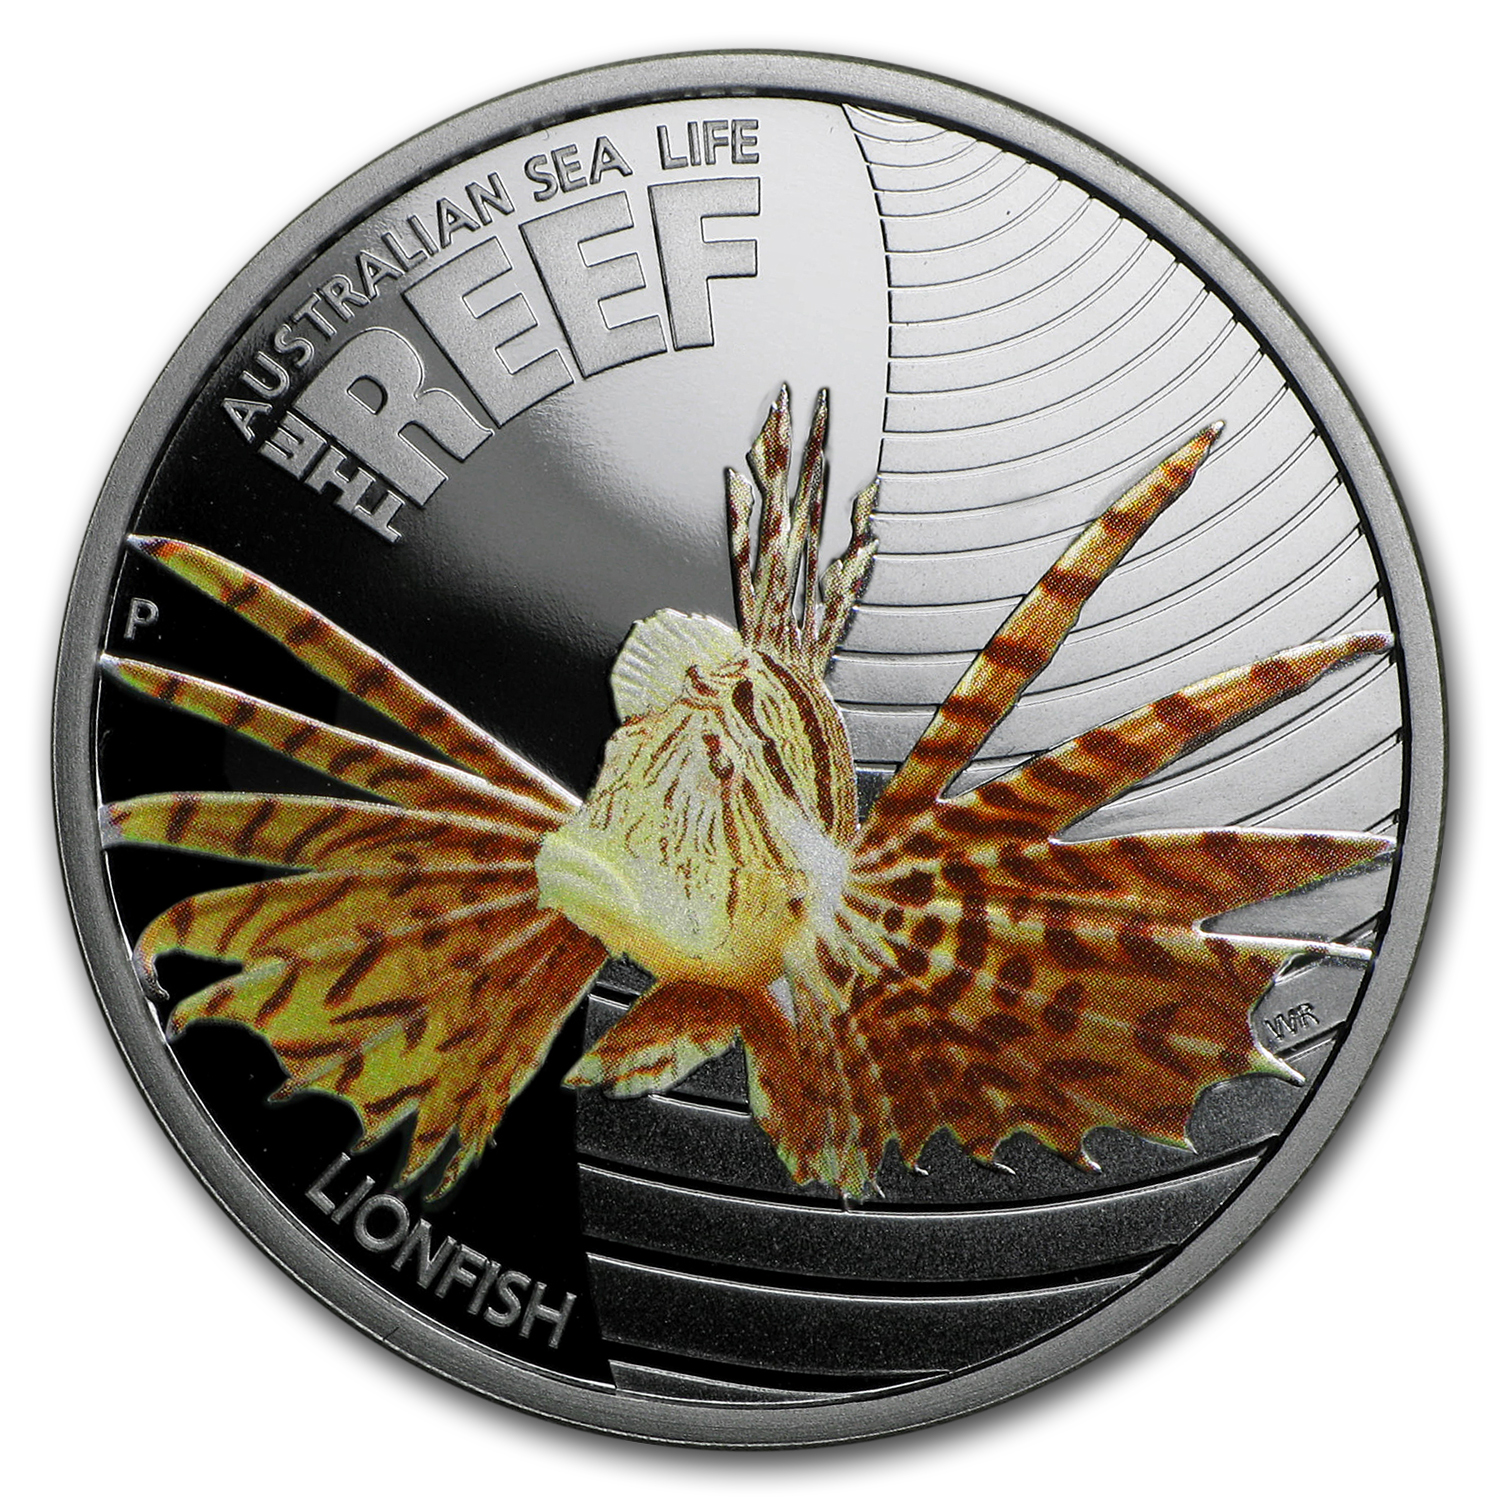 2009 Australia 1/2 oz Silver Lionfish Proof